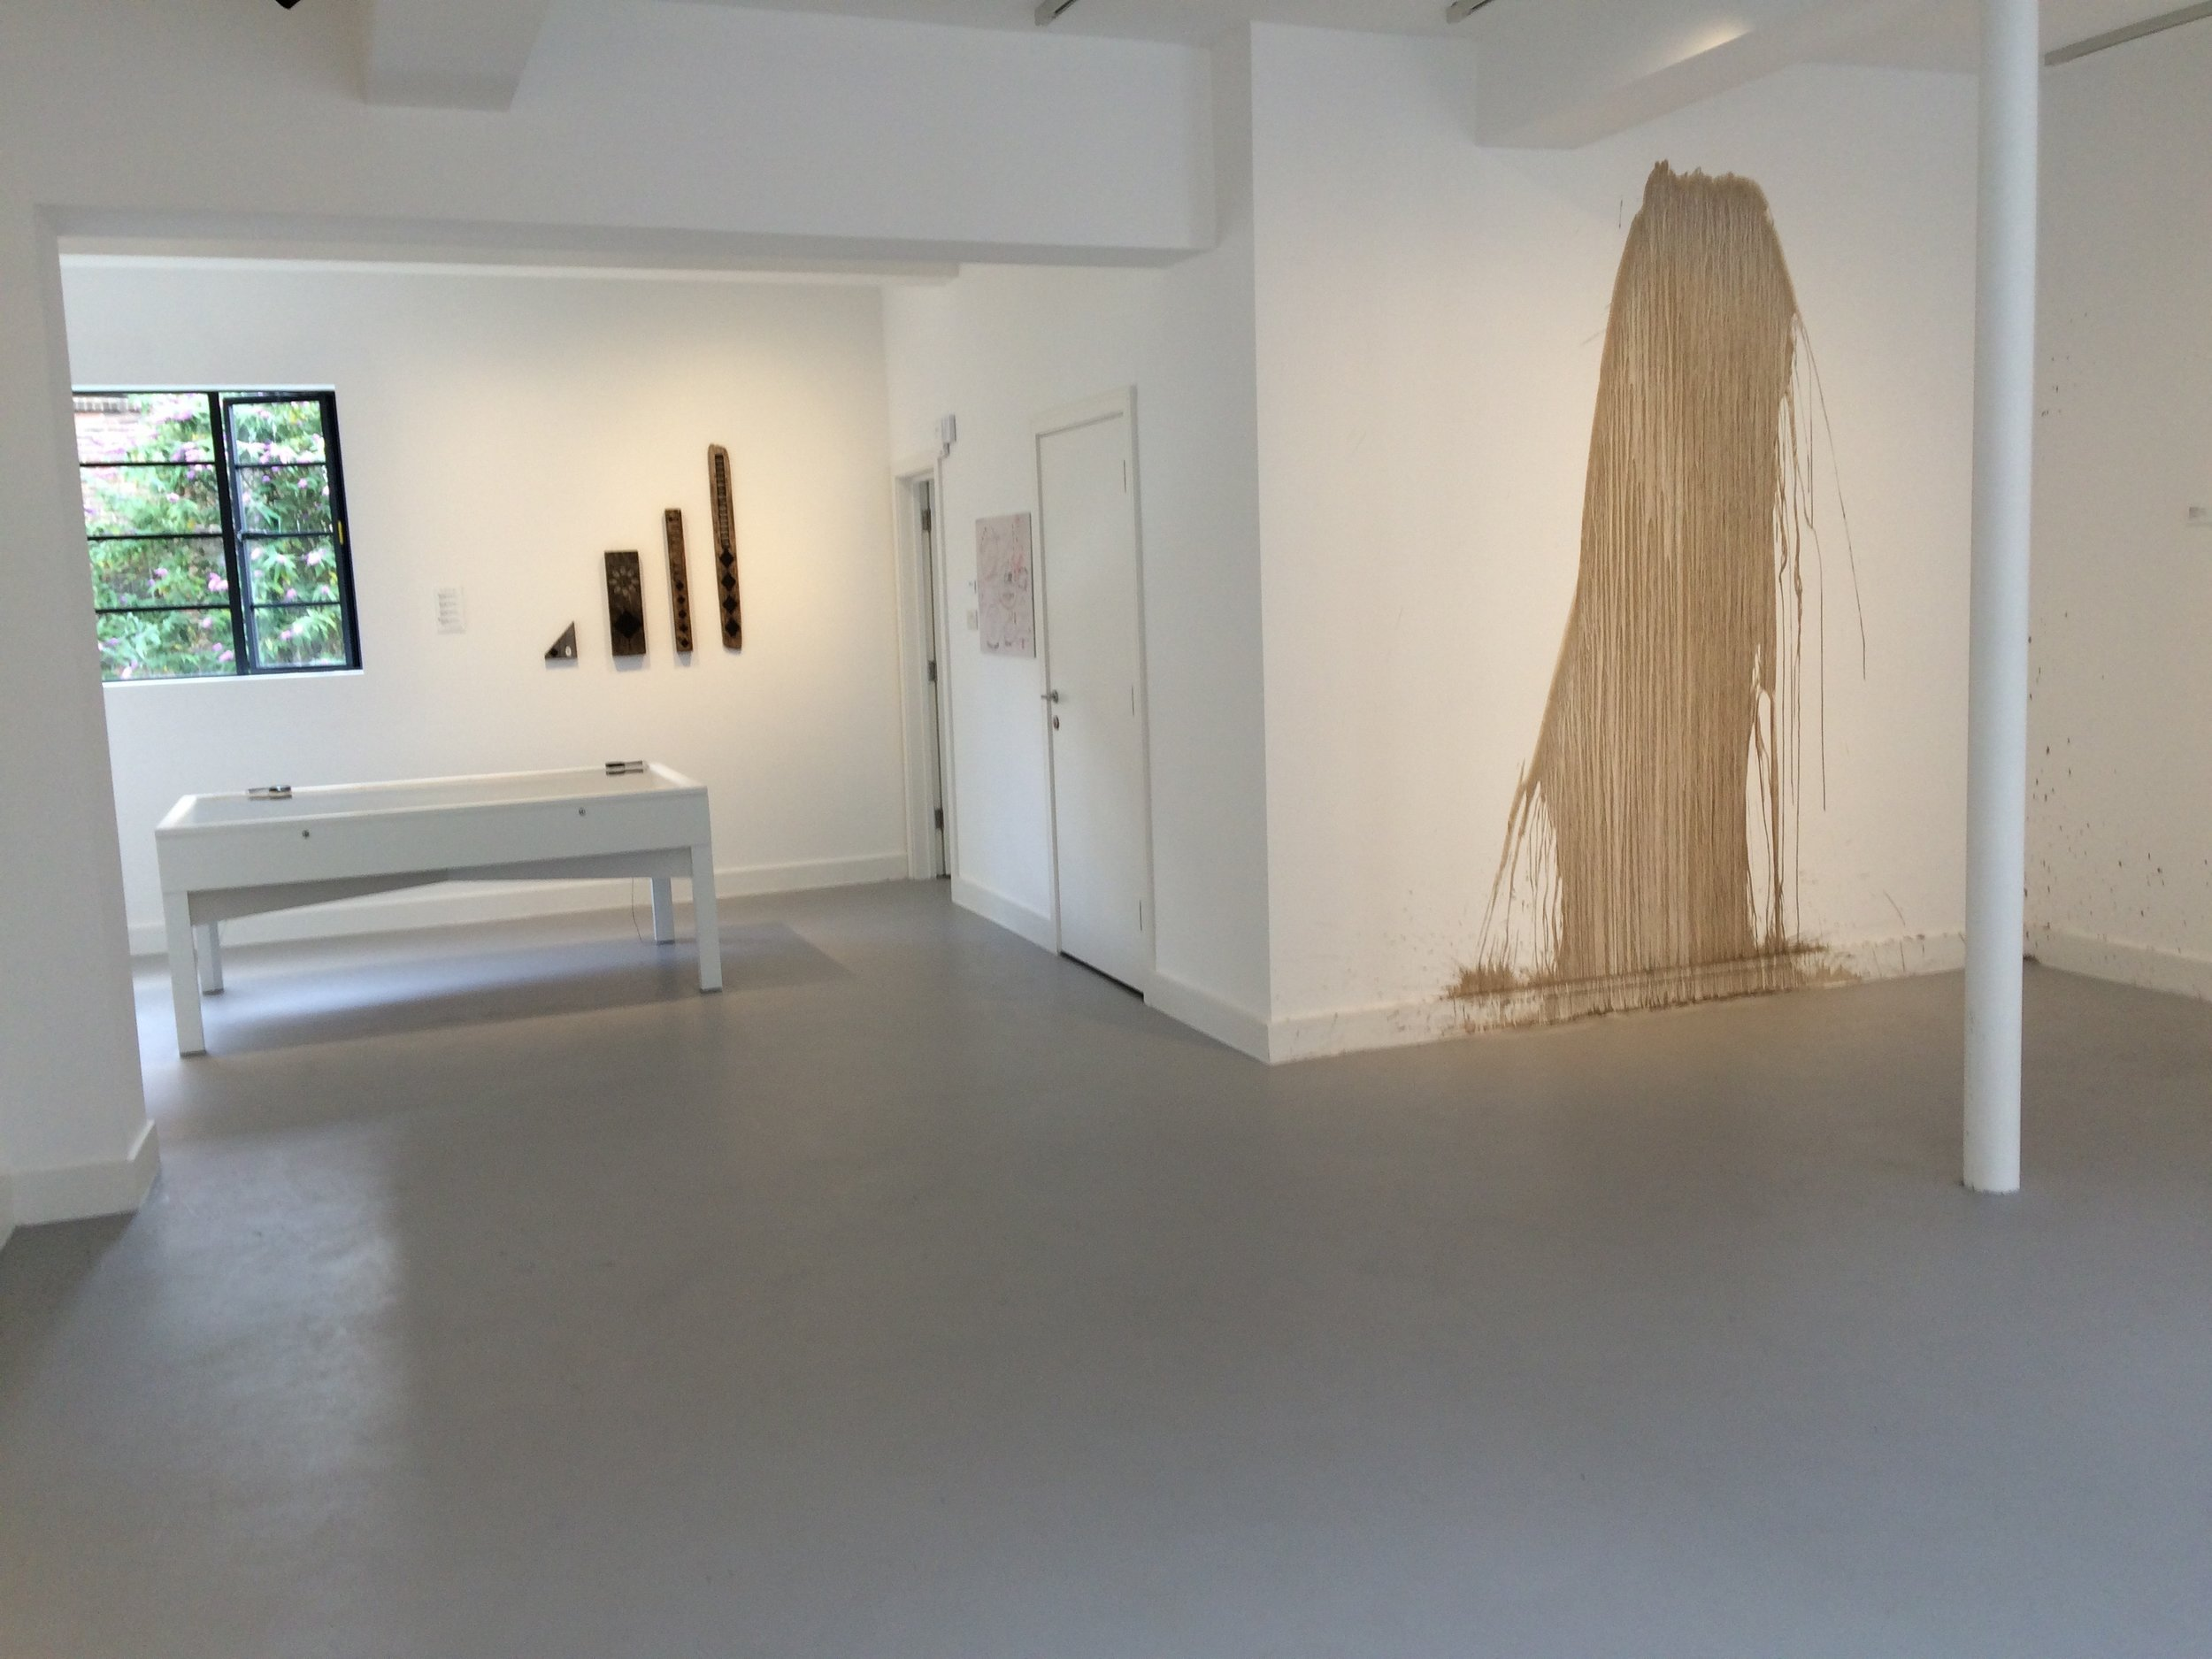 Richard Long, Great Ouse Mud Drawing 2016 in situ, GroundWork Gallery  Photo by Steve Jackson